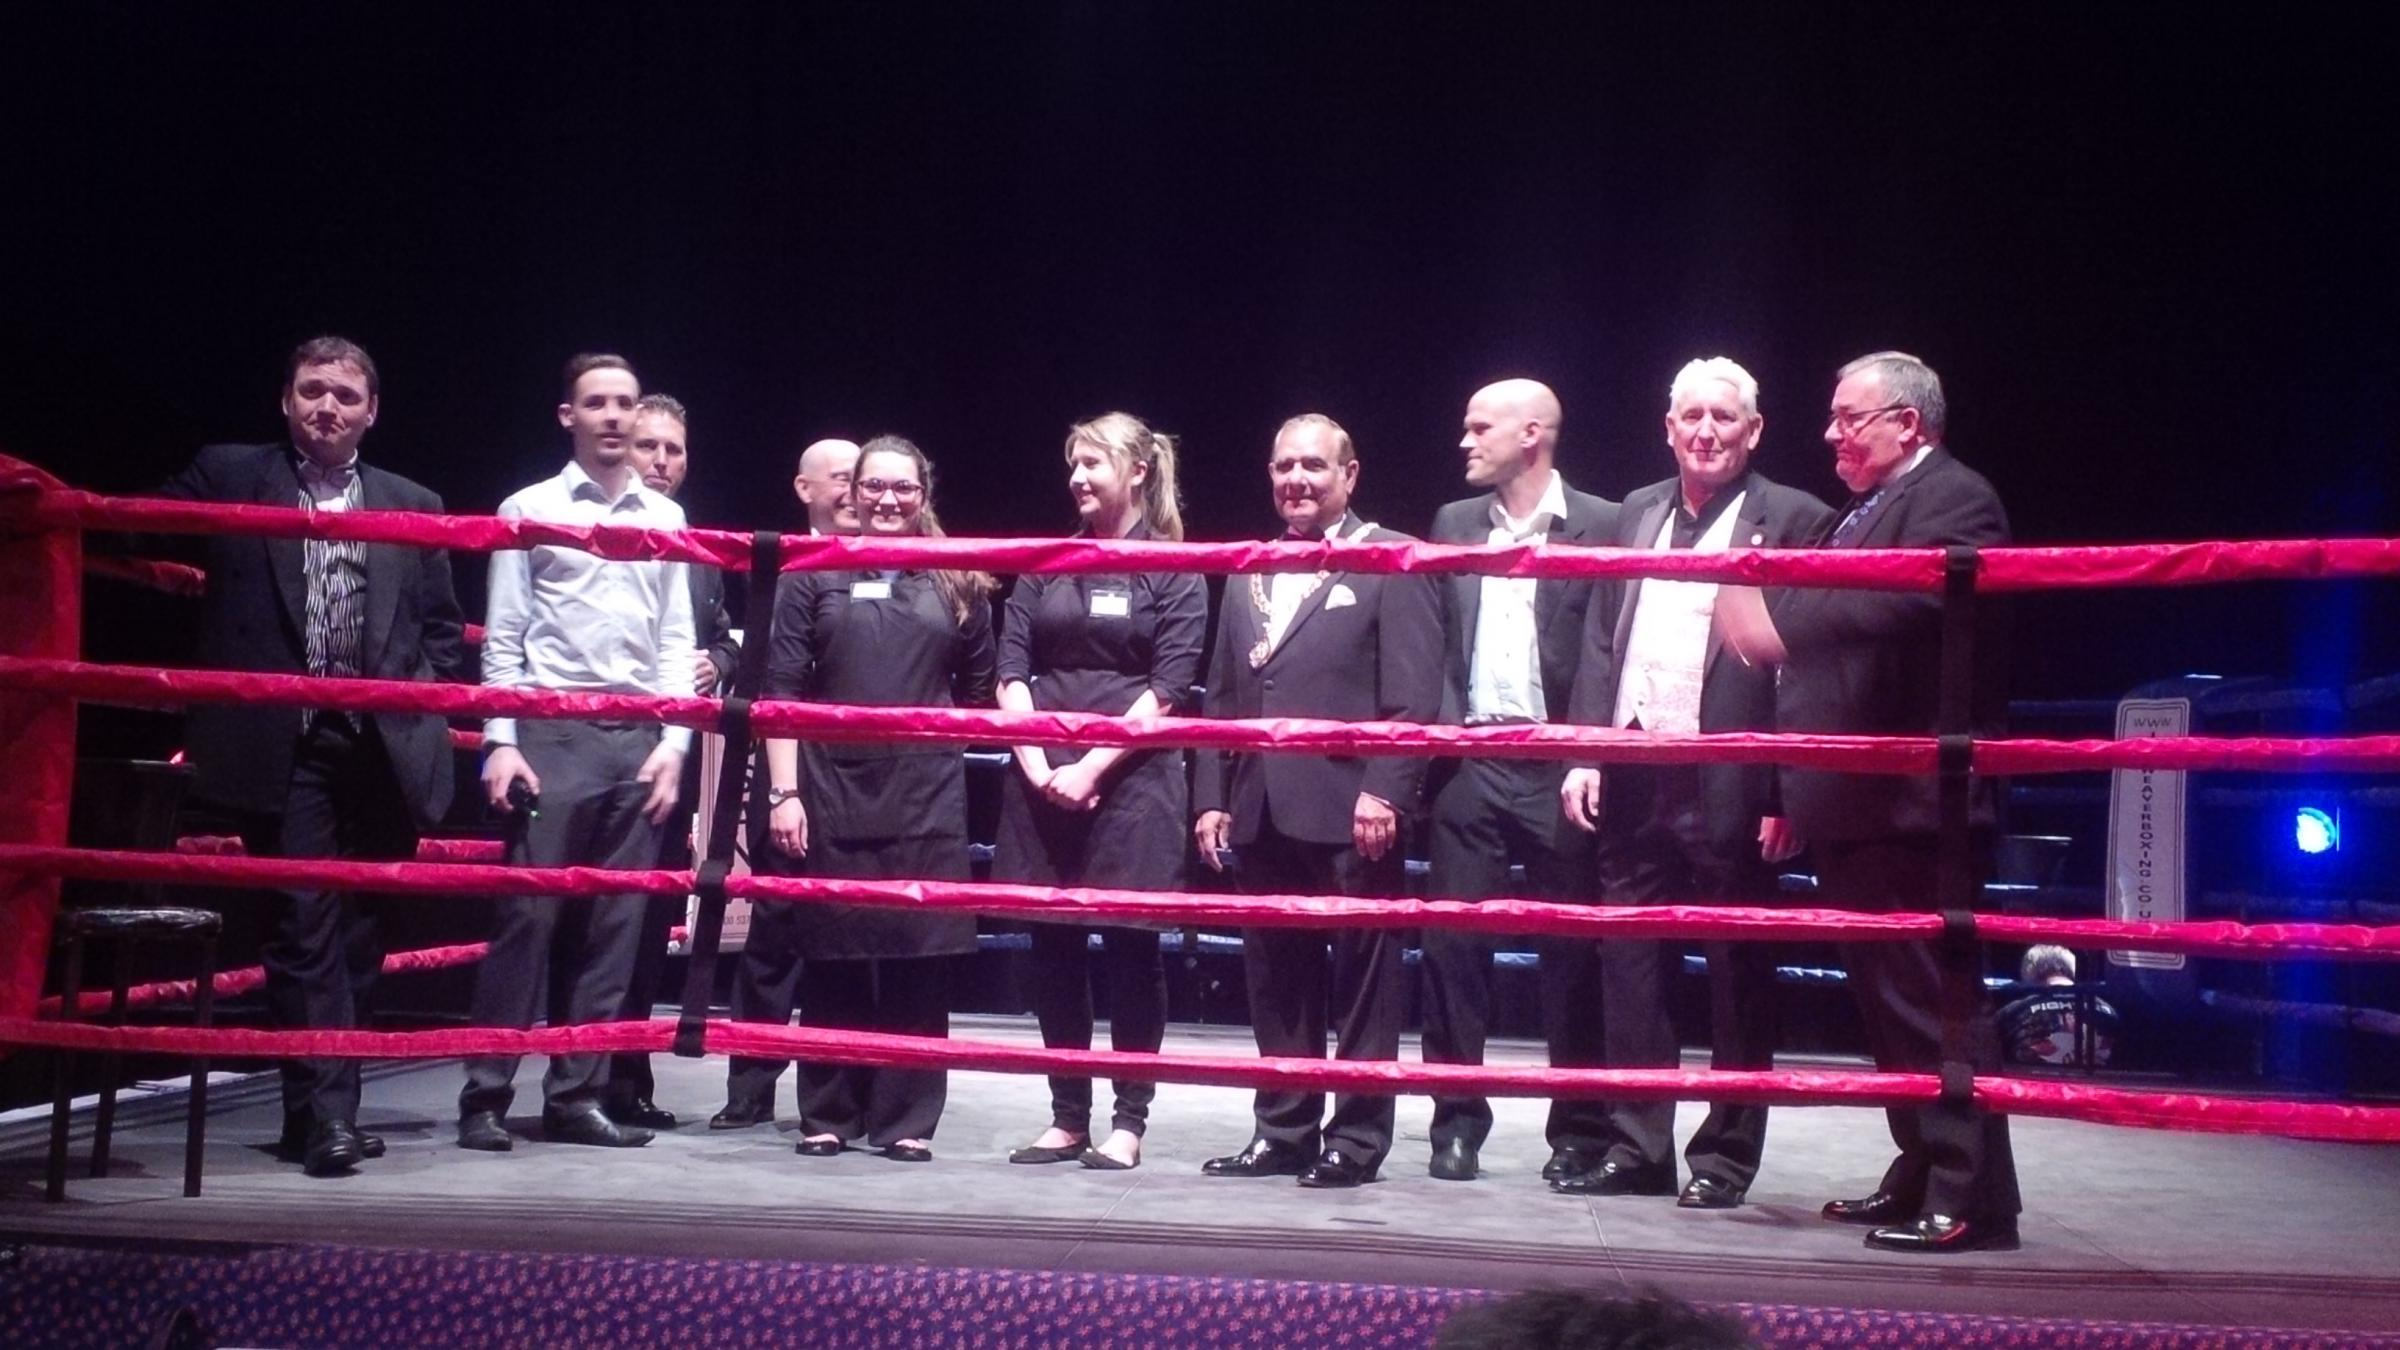 Boxing gala raises £2k for charity